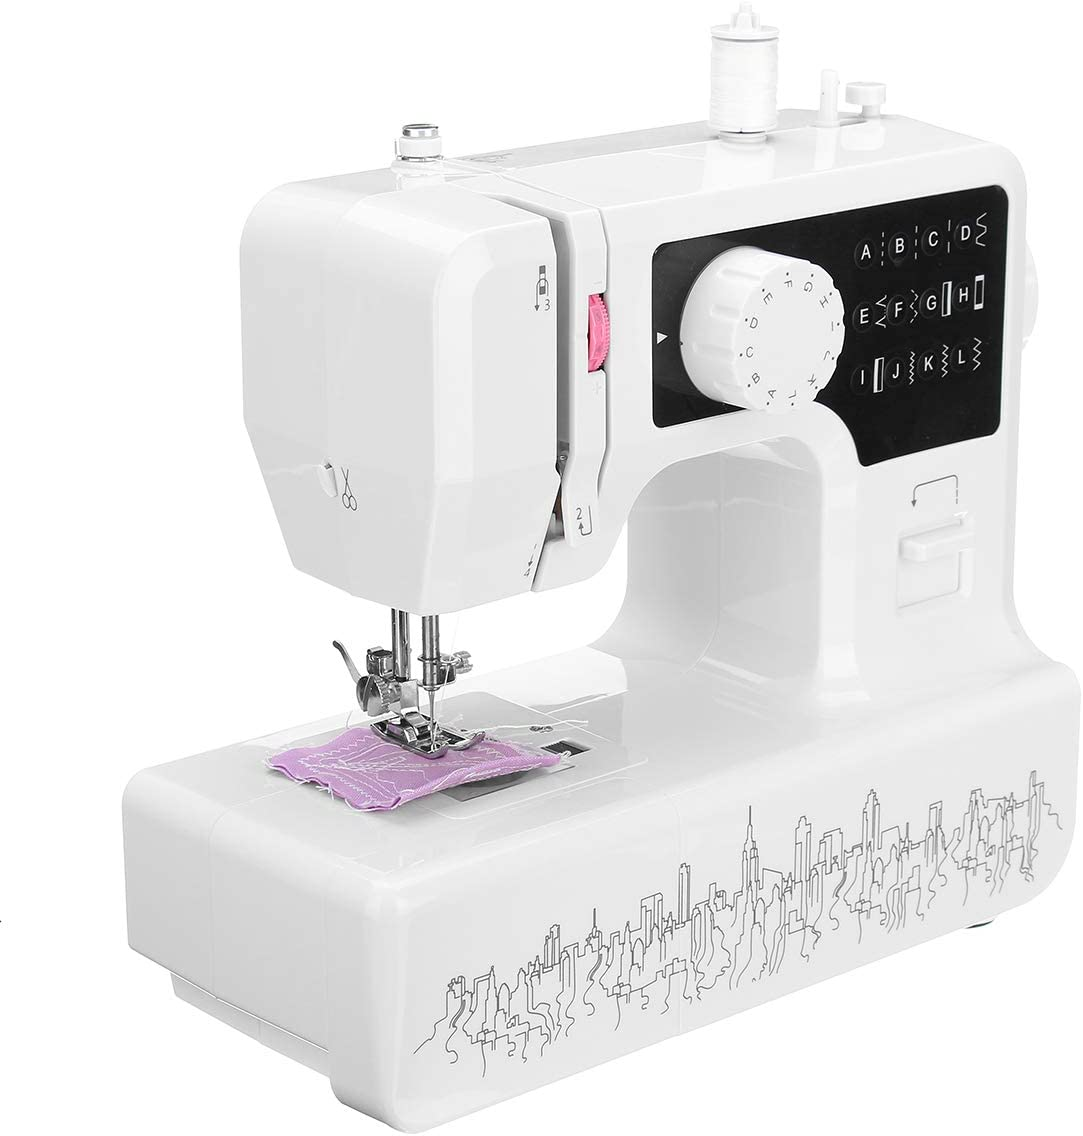 LEXPON Electric Sewing Machine Household Heavy Duty Easy Operation Durable Great for DIY Sewing Project Professional and Beginner Friendly